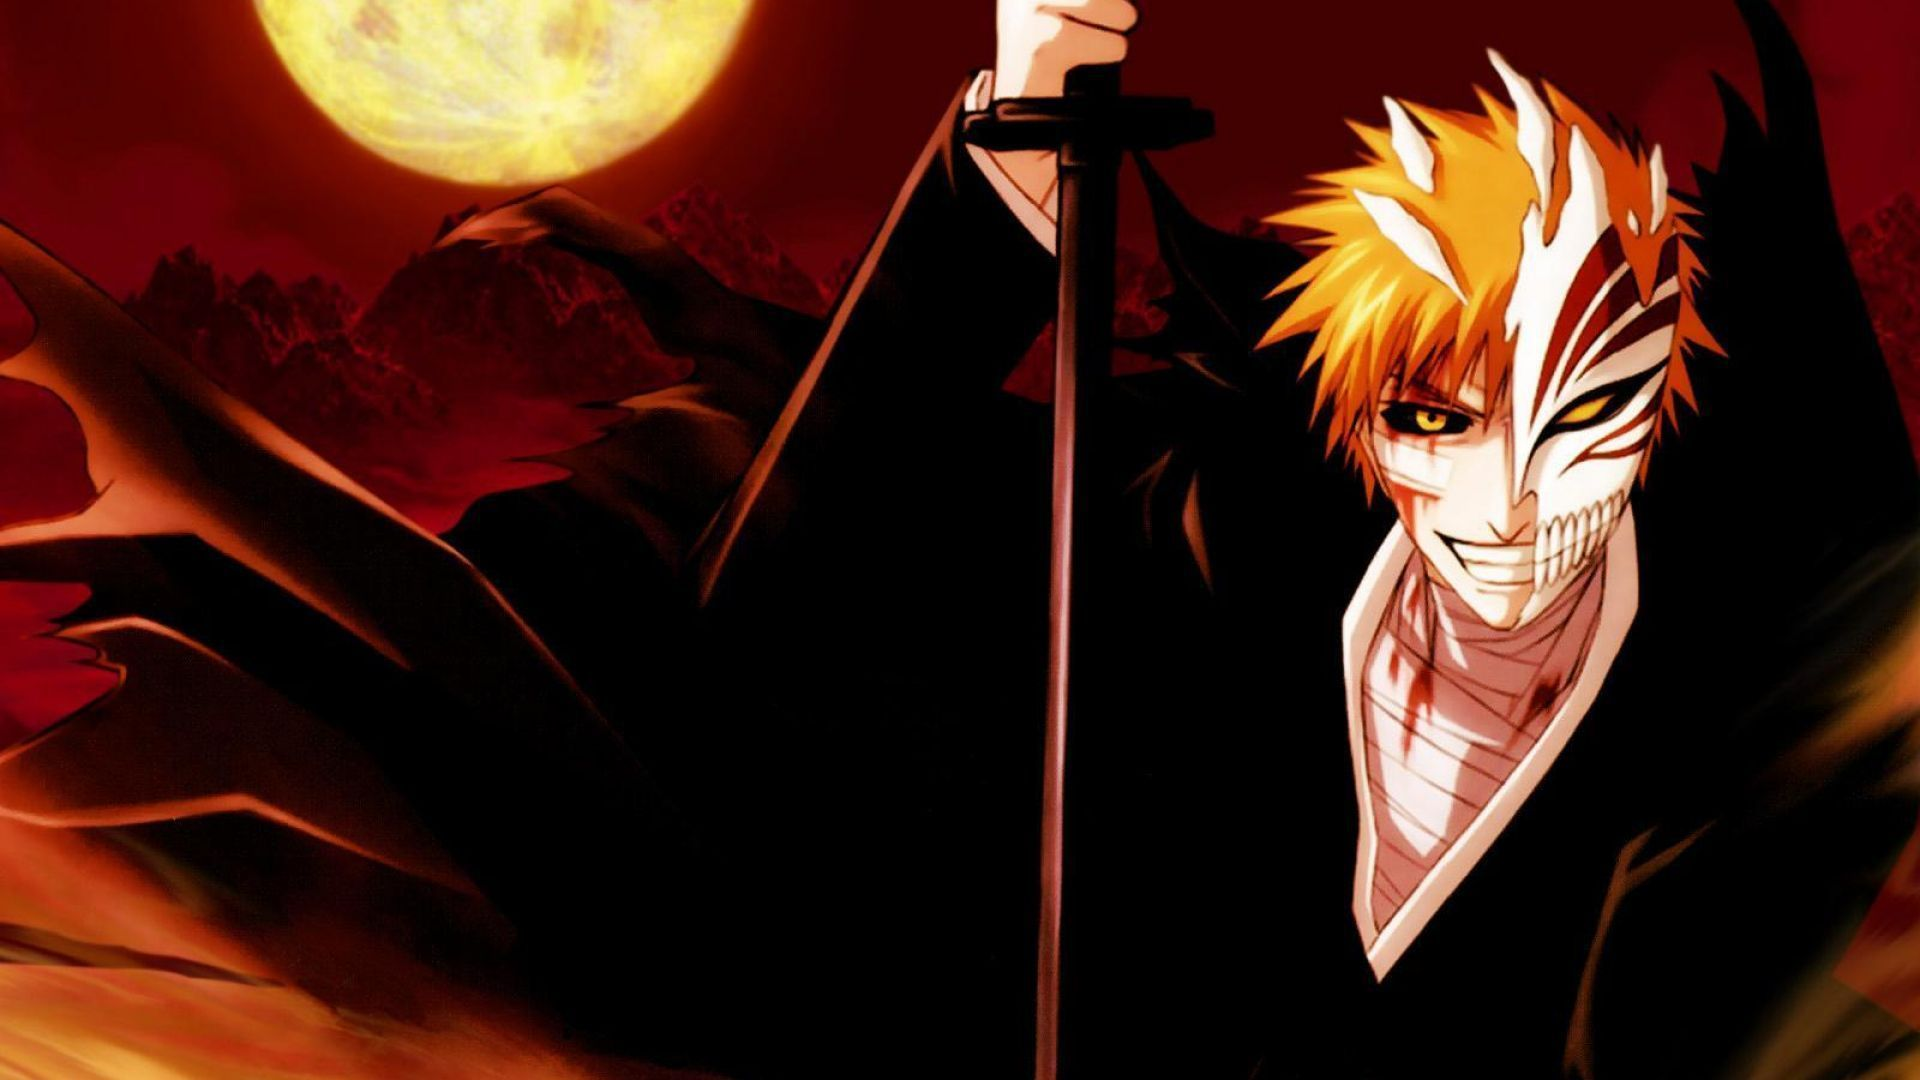 awesome bleach anime wallpaper (239) | bleach - anime | pinterest